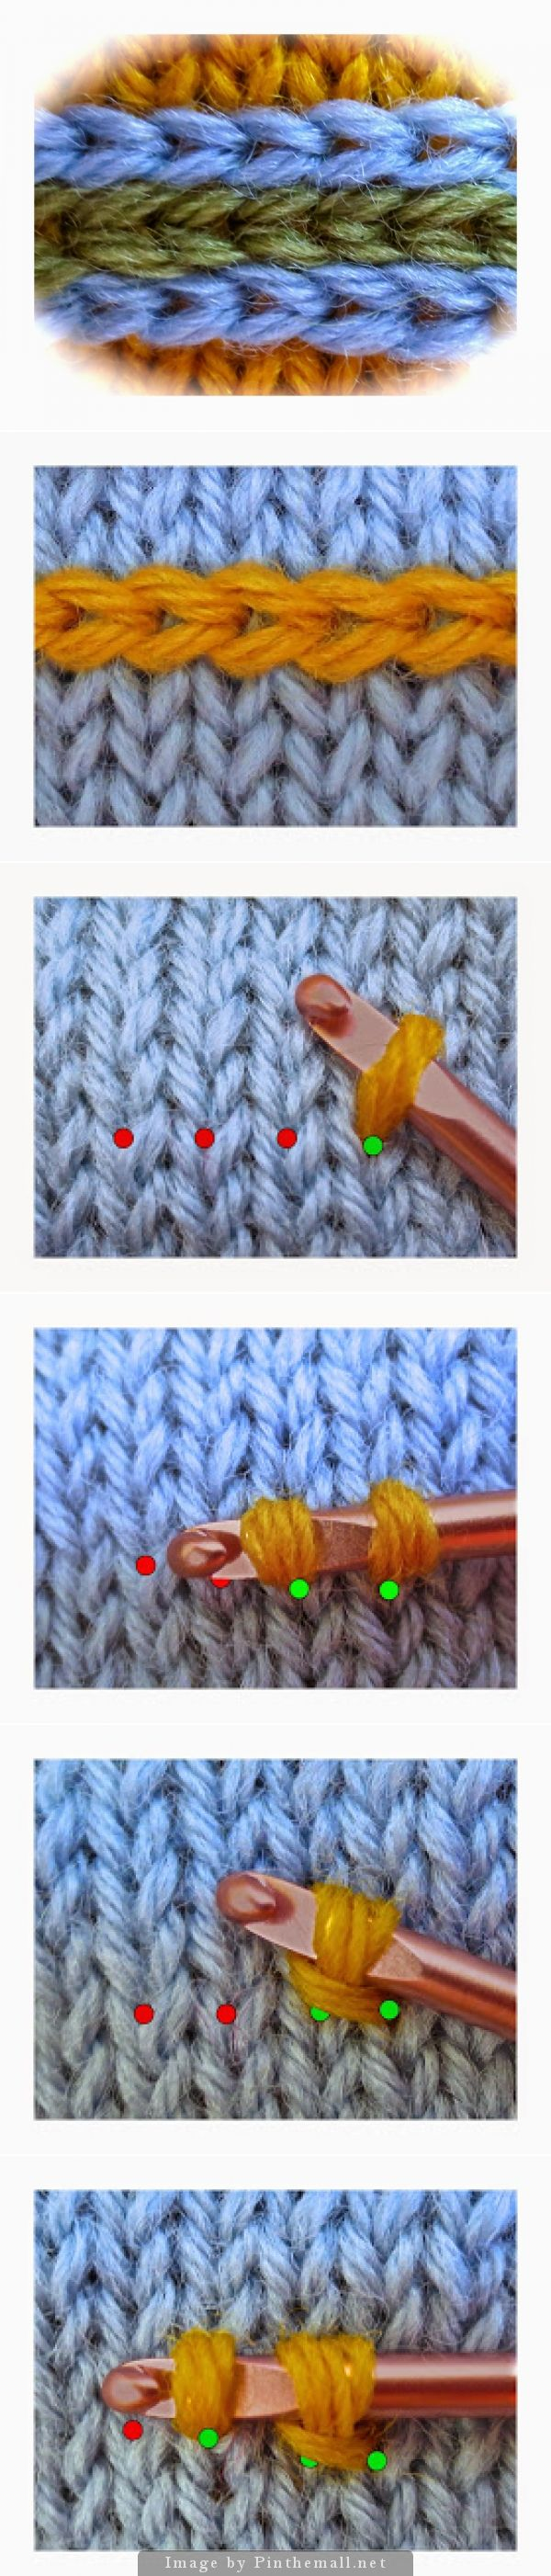 "#Knitting/Crochet_Stitches - ""This decoration for knitted projects looks like #Latvian_Knitting, but is really just crocheted slip stitches made into a knitted foundation. It's really easy to do and is a very effective way to add design interest to your knitting."" Enjoy your knitting from #KnittingGuru"